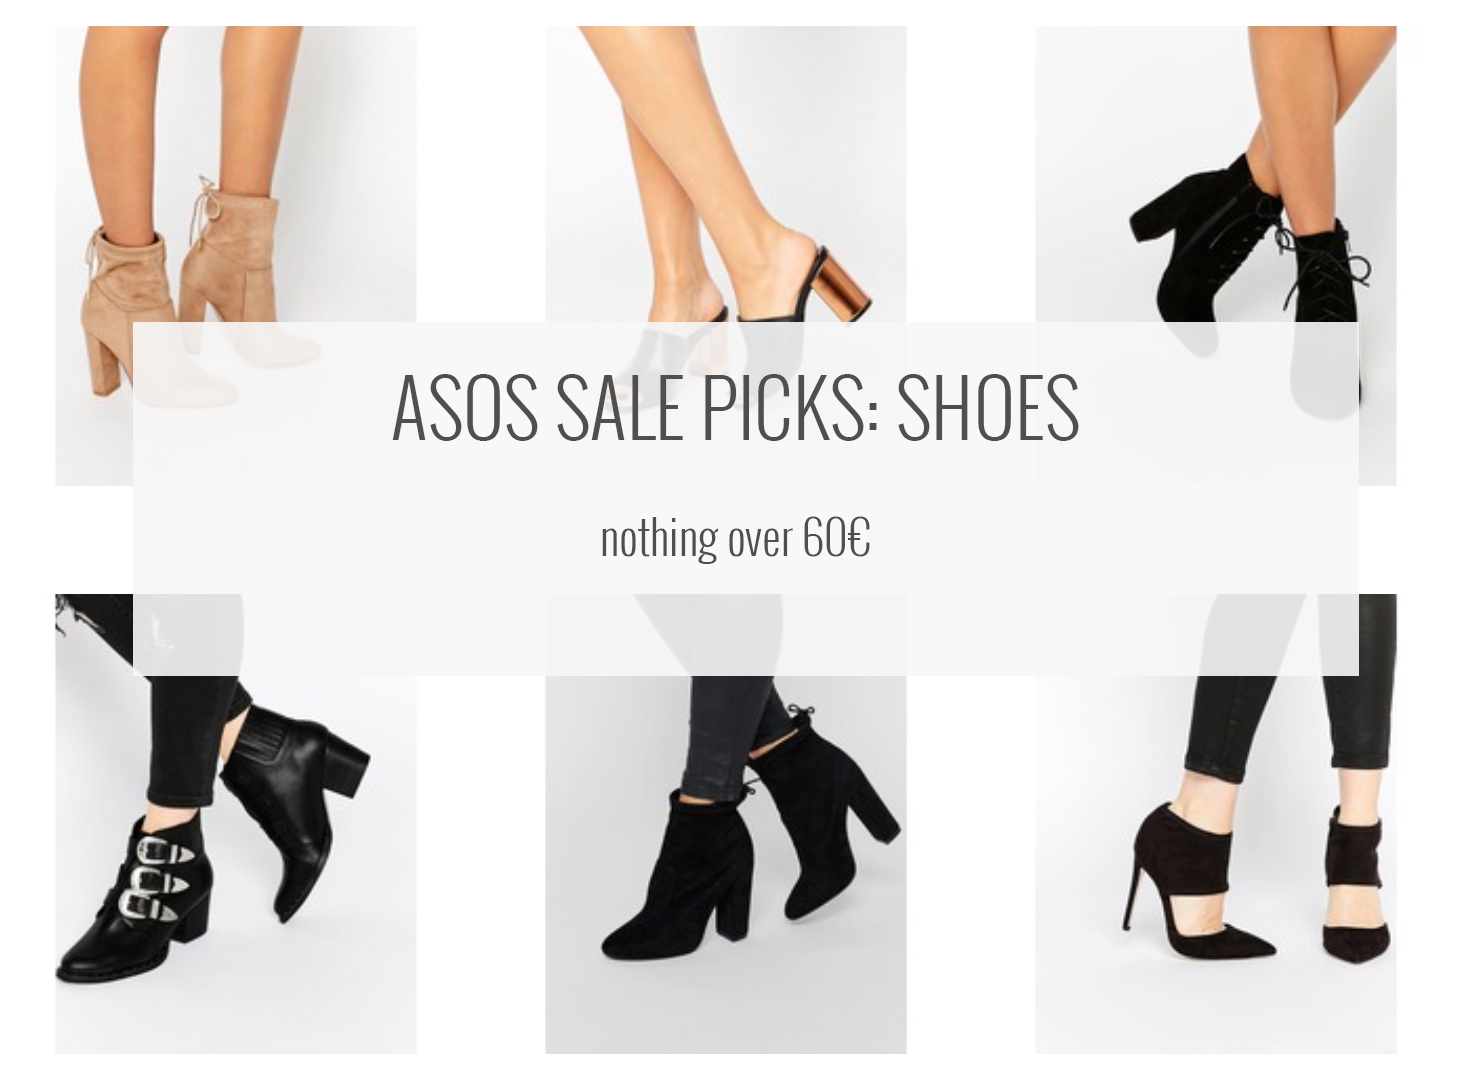 Discover sale of women's clothes, shoes and accessories at ASOS. Shop for the latest items on sale including petite, tall, plus size and maternity at ASOS.